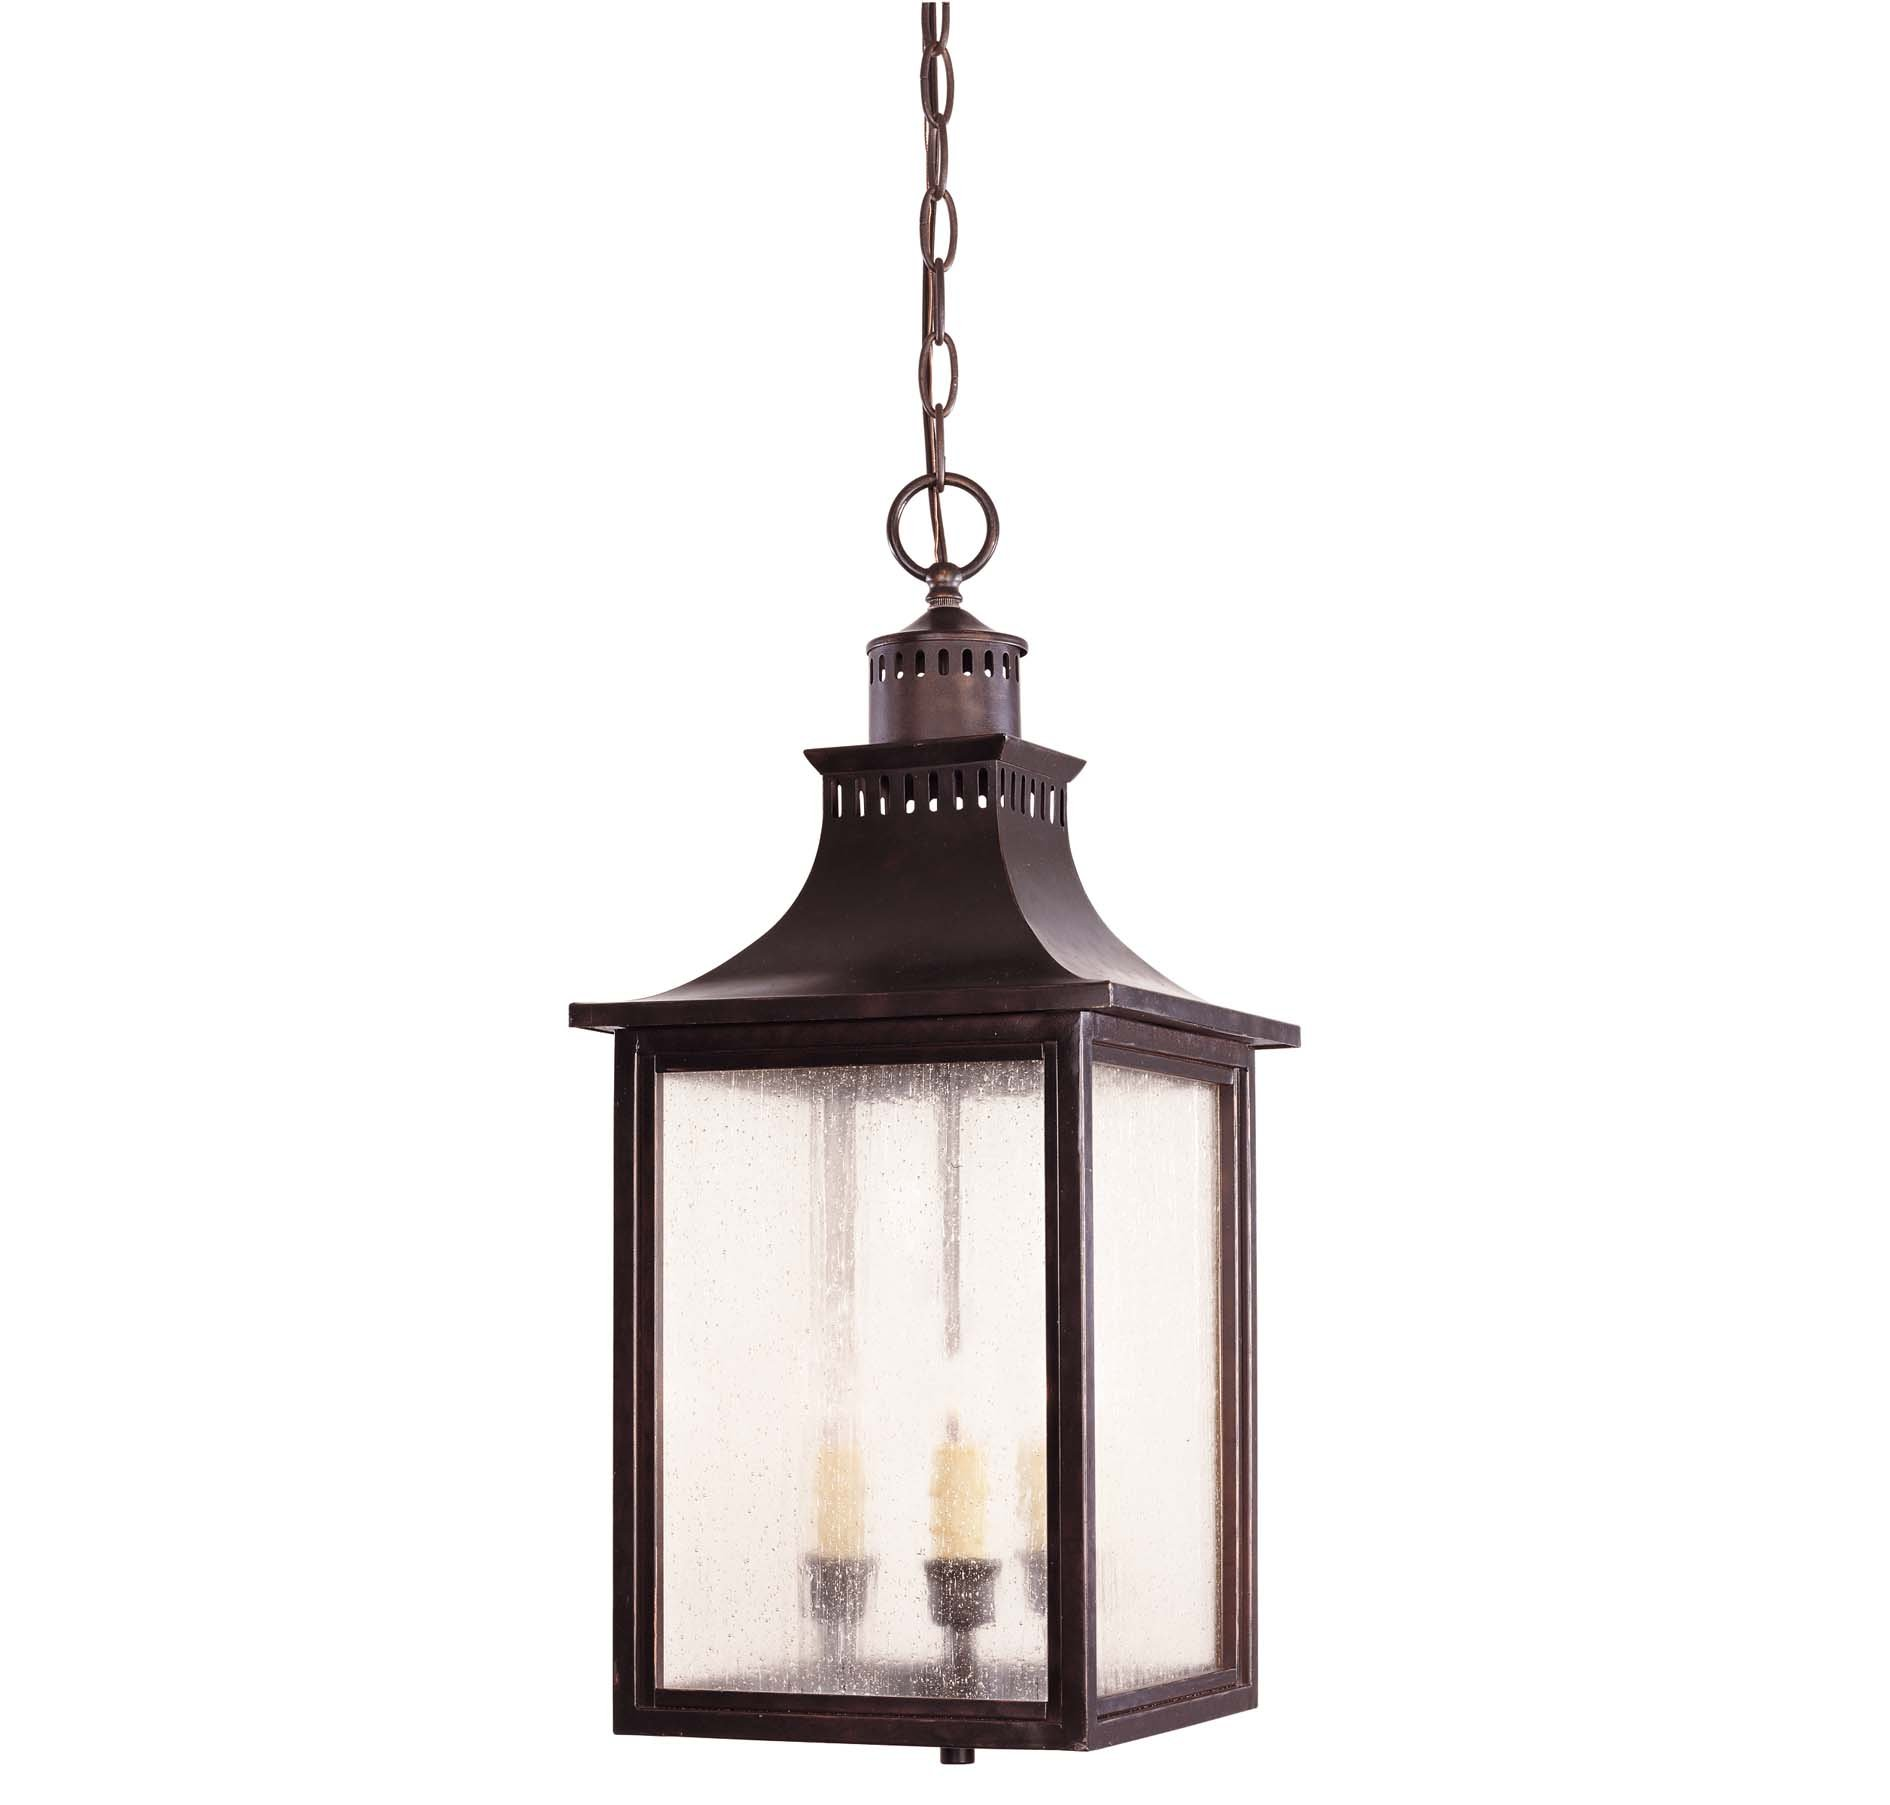 Savoy House Lighting 5-256-13 Monte Grande Collection 3-Light Outdoor Hanging Entry Lantern, English Bronze Finish with Pale Cream Seeded Glass